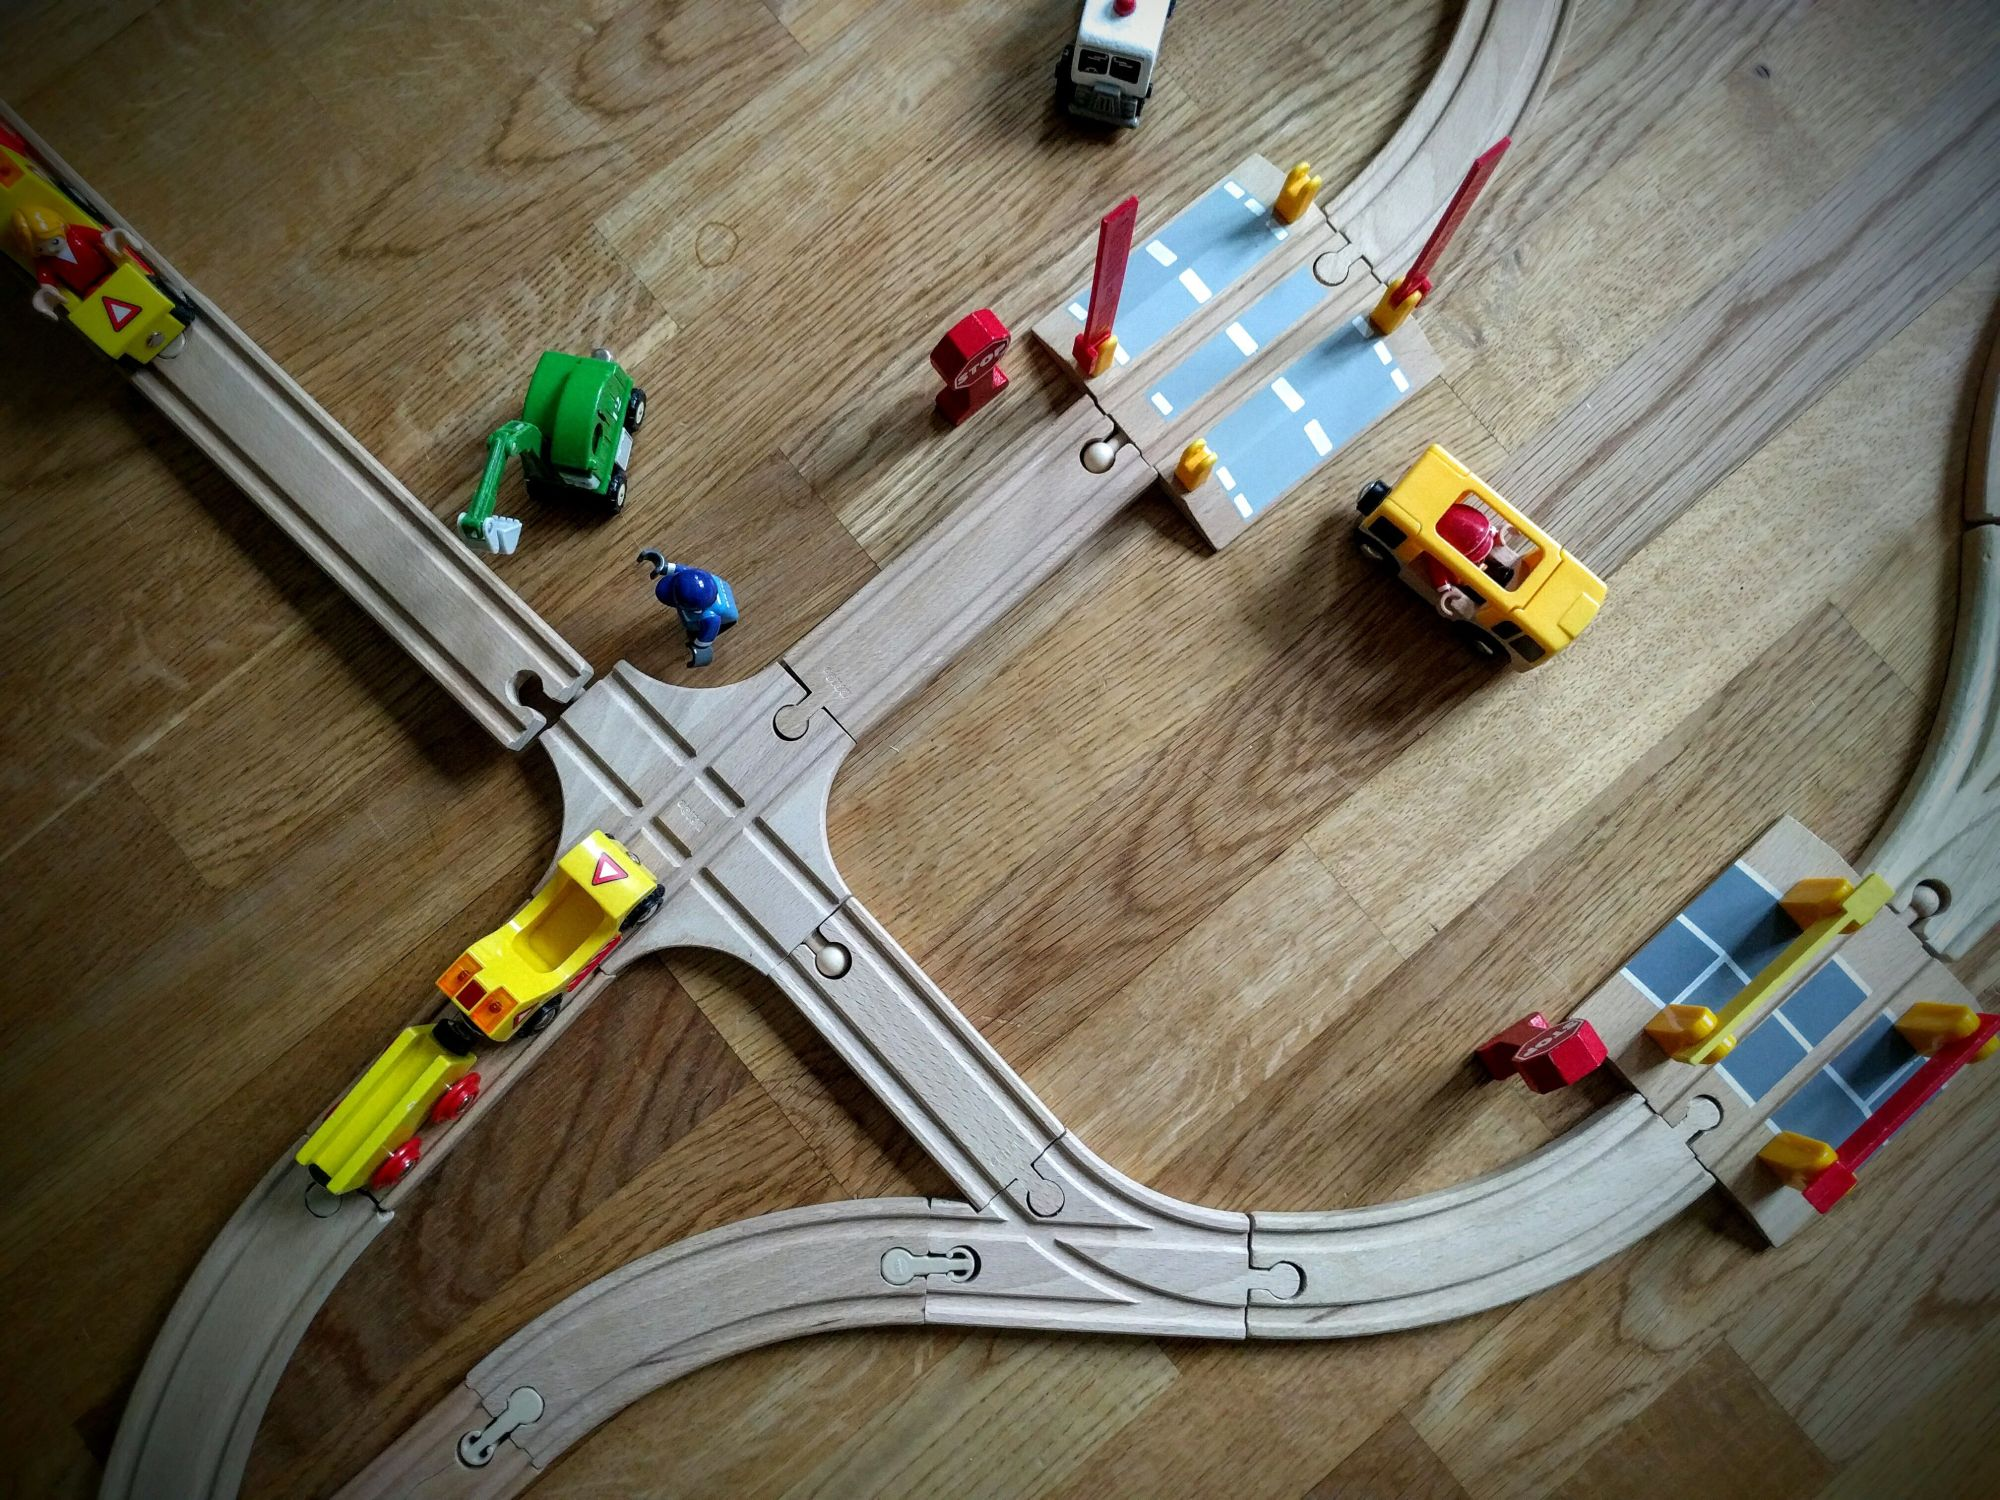 Wooden train set, Brio wooden train, Thomas & Friends wooden train, Chuggington wooden train